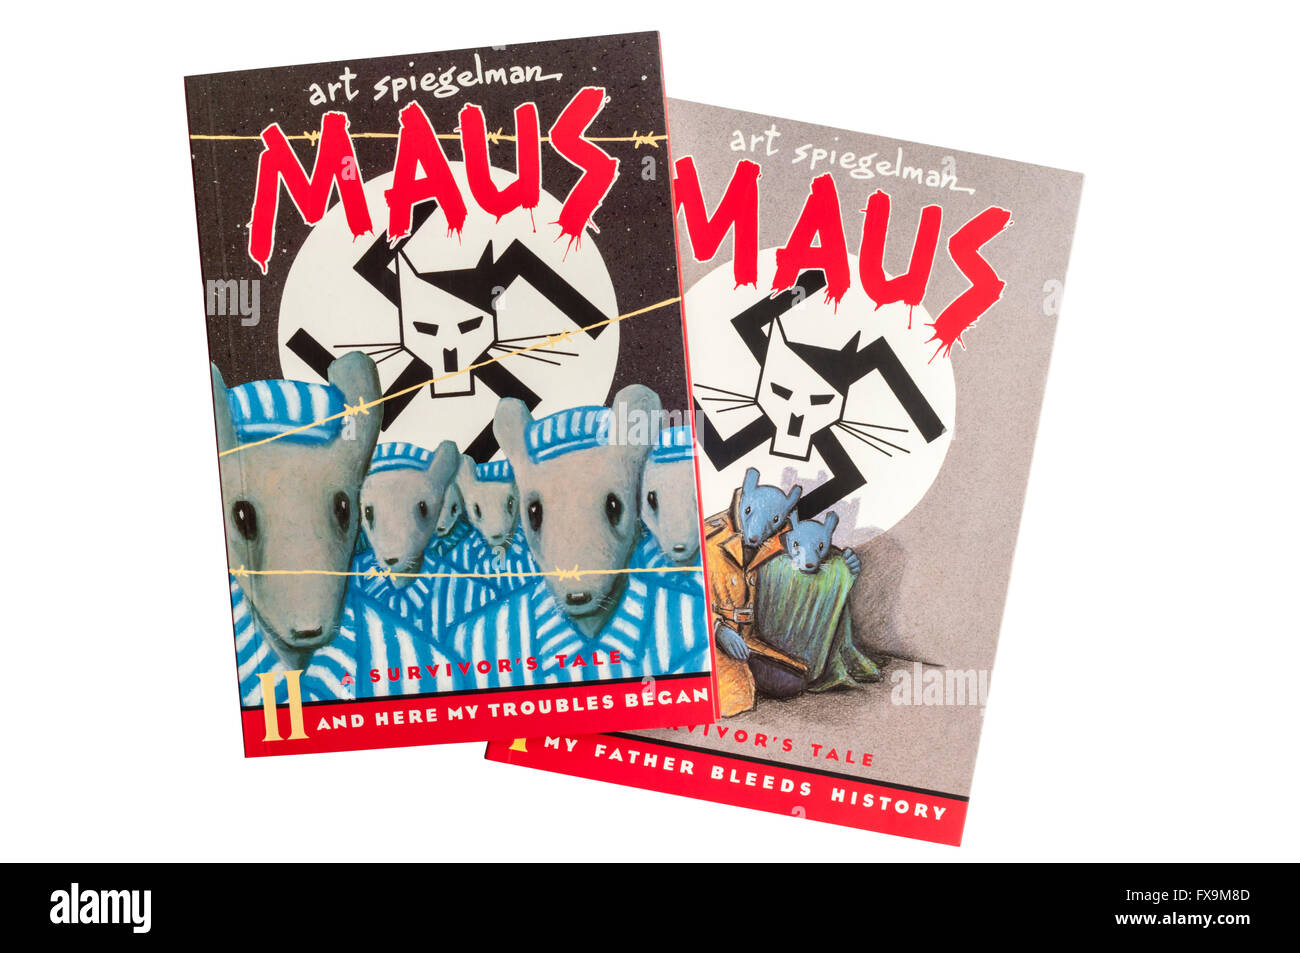 Volumes I and II of Maus A Survivor's Tale by Art Spiegelman.  Published as a boxed set by Penguin. - Stock Image